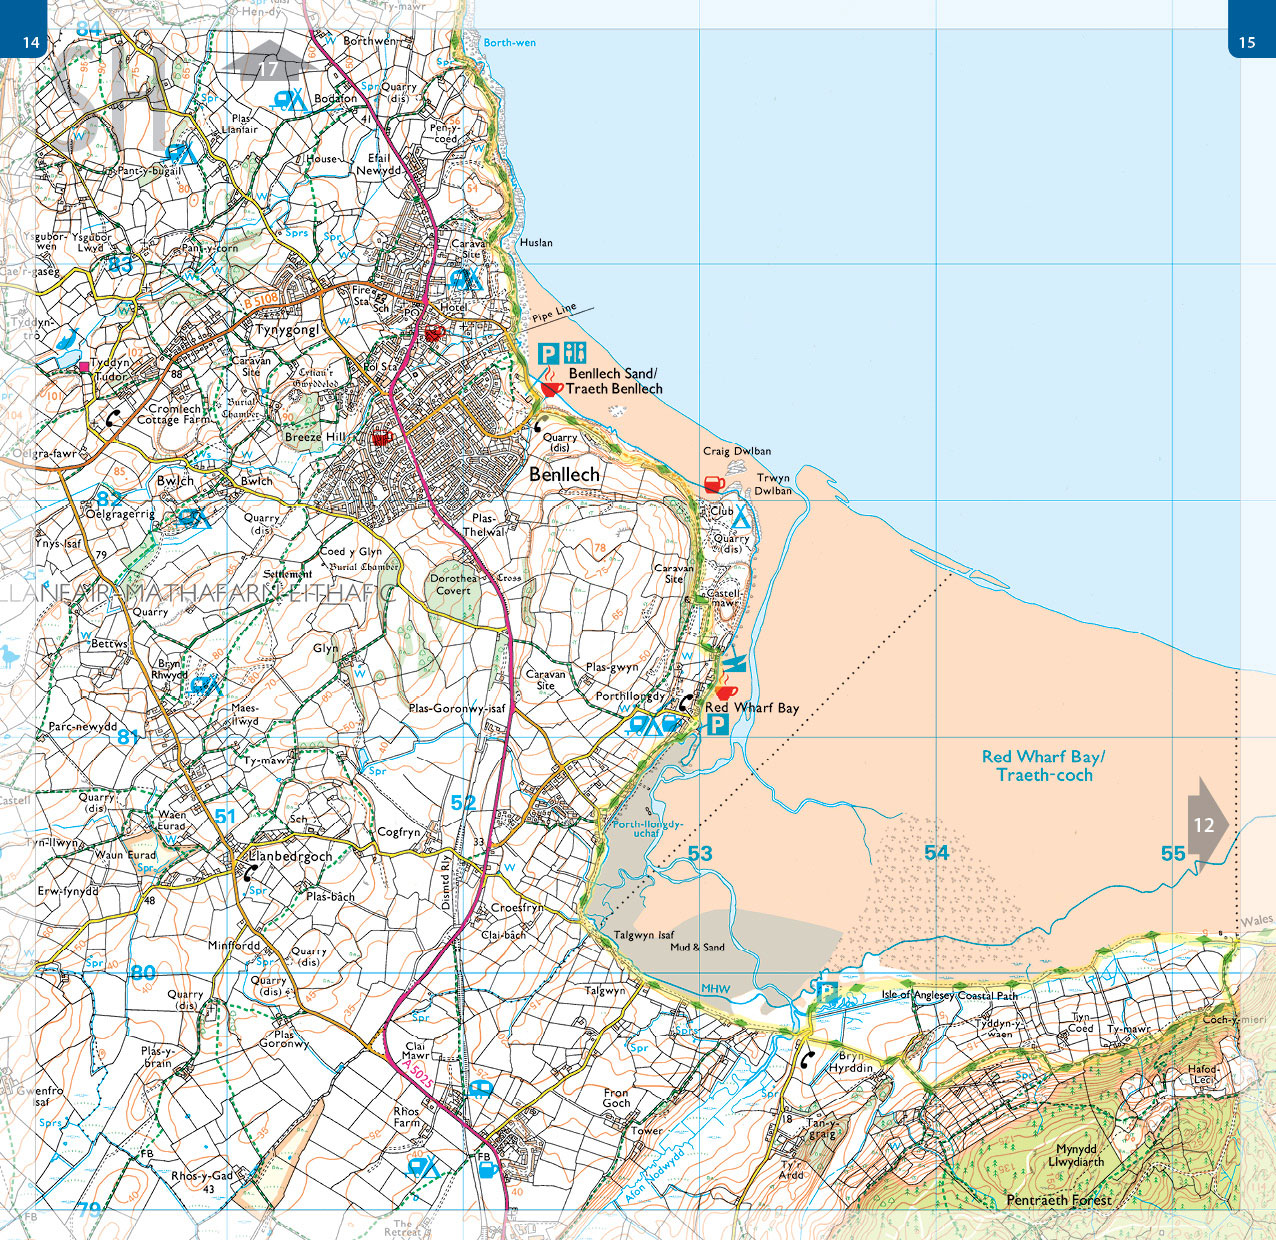 OS map book - 1:25,000 scale - Isle of Anglesey. Map spread showing Benllech and the Wales Coast Path